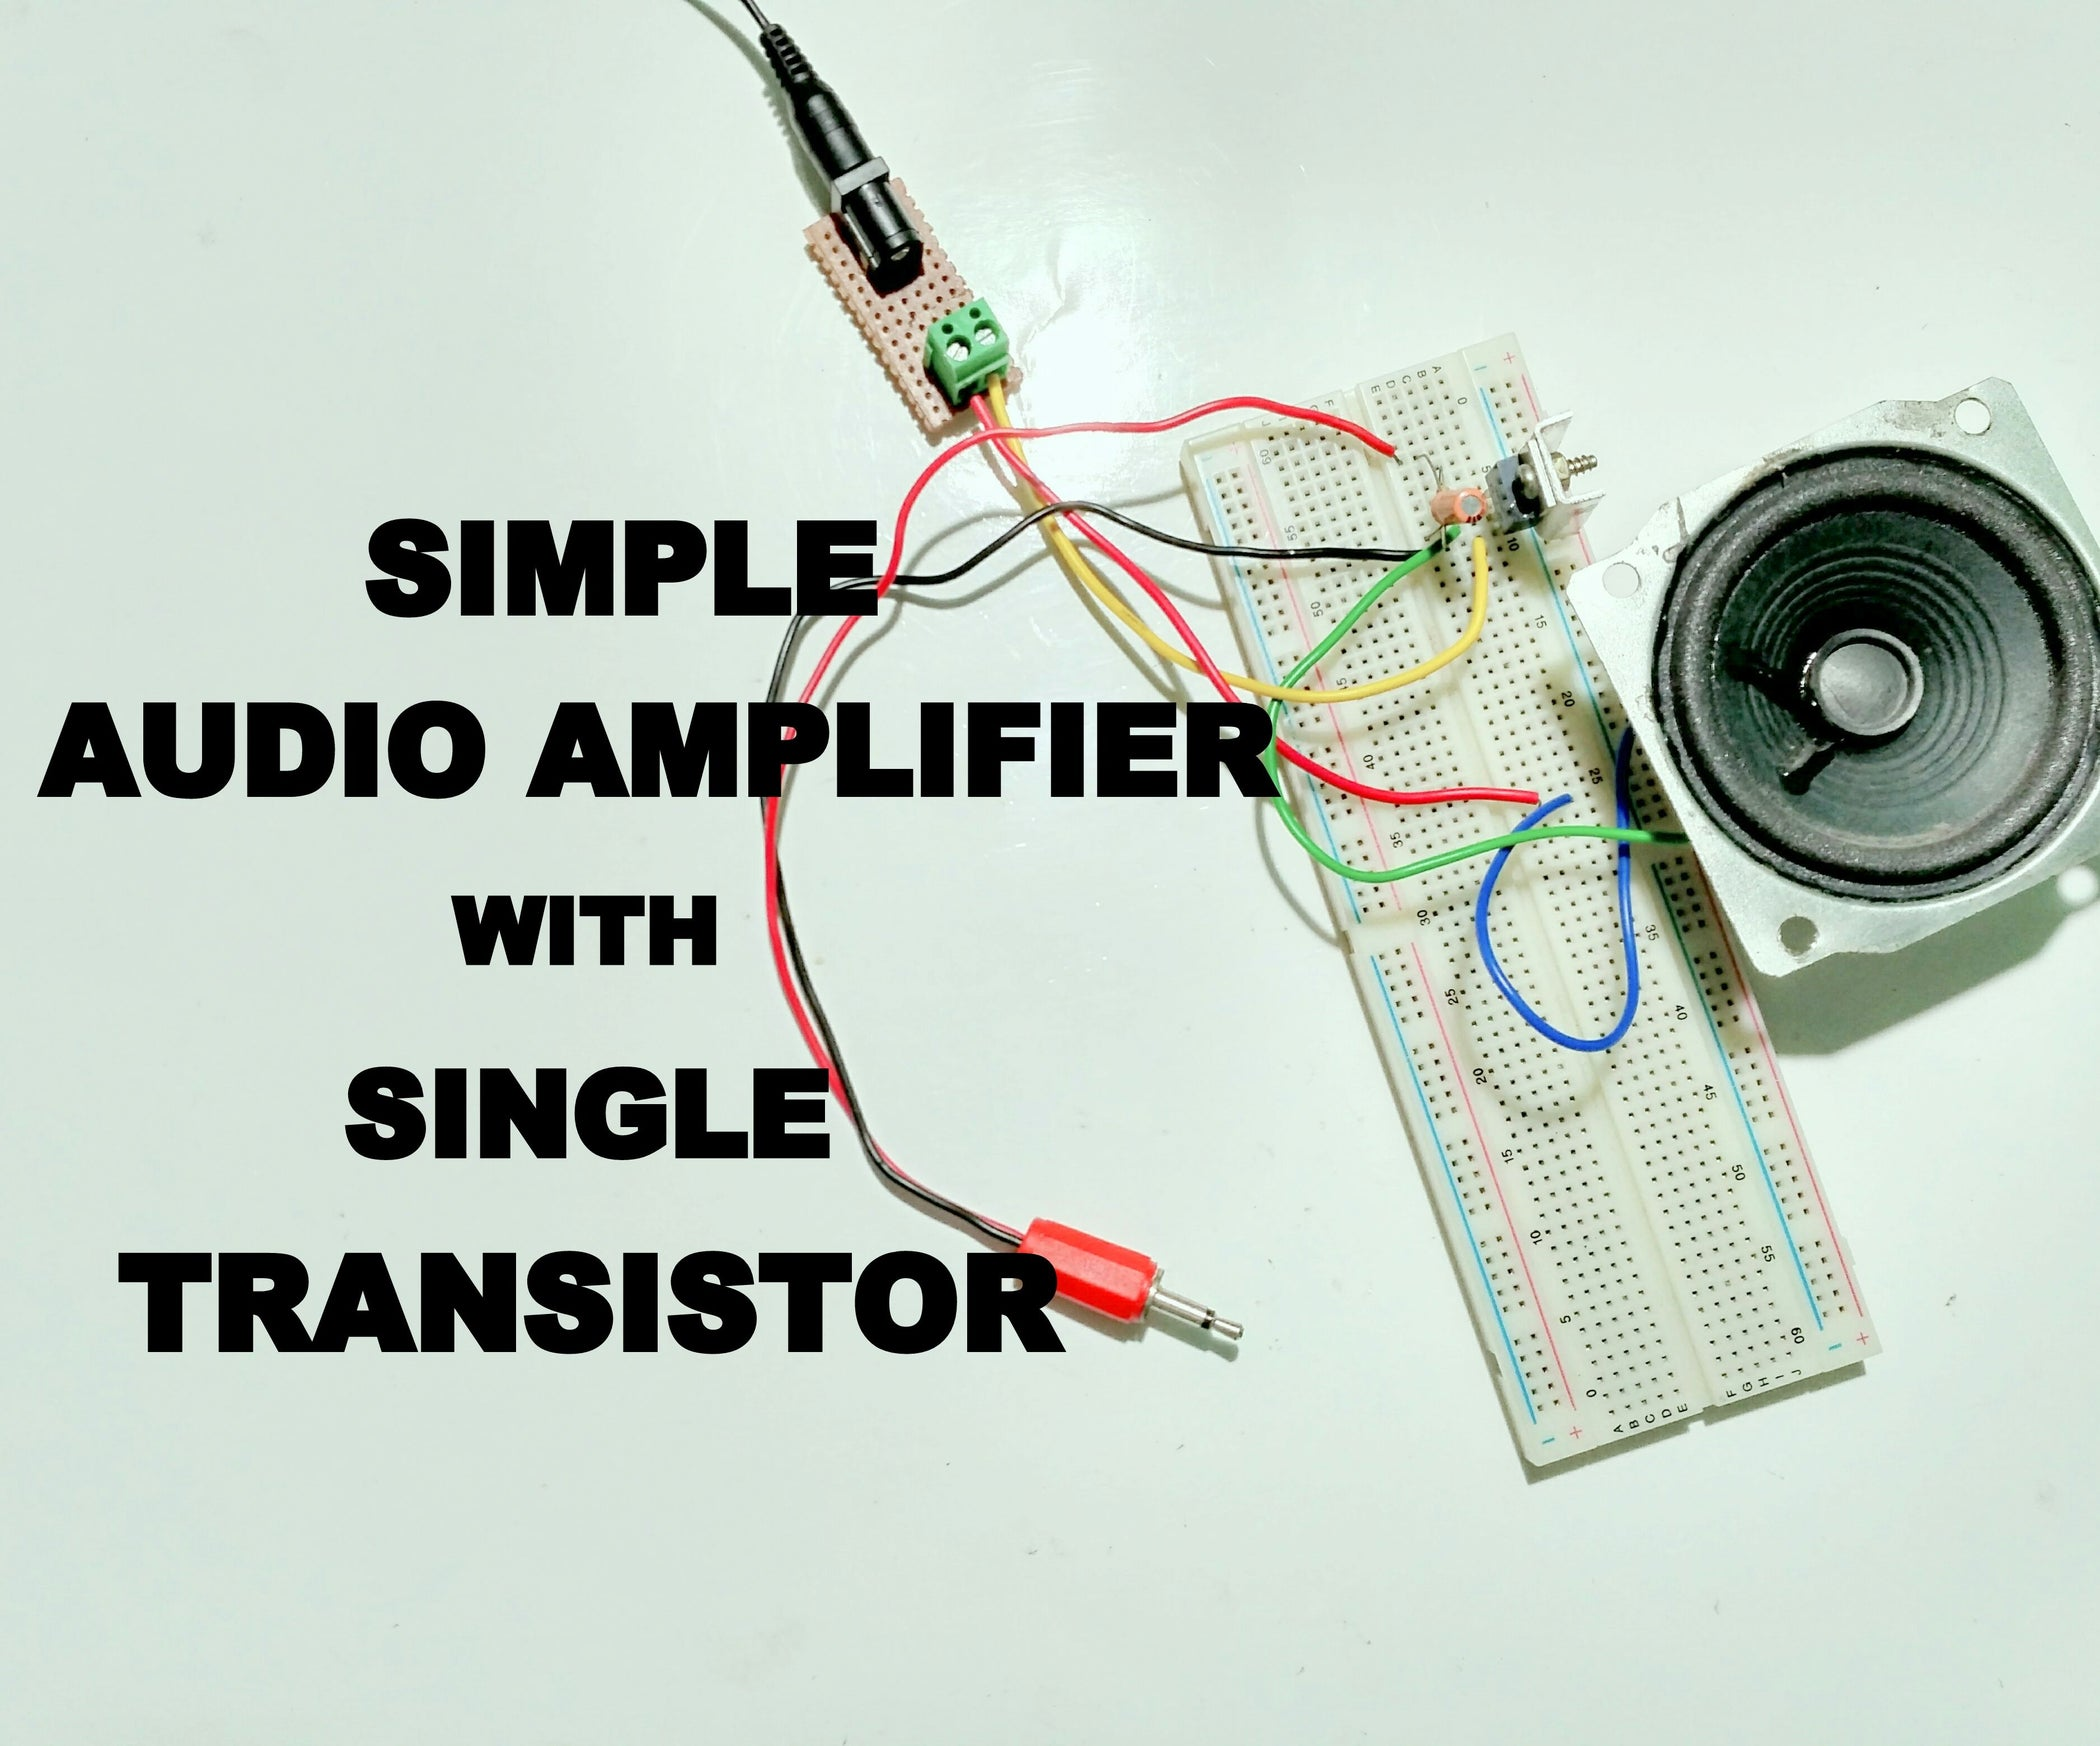 Simple Audio Amplifier Using Single Transistor 3 Steps With Pictures Circuit Diagram Breadboard